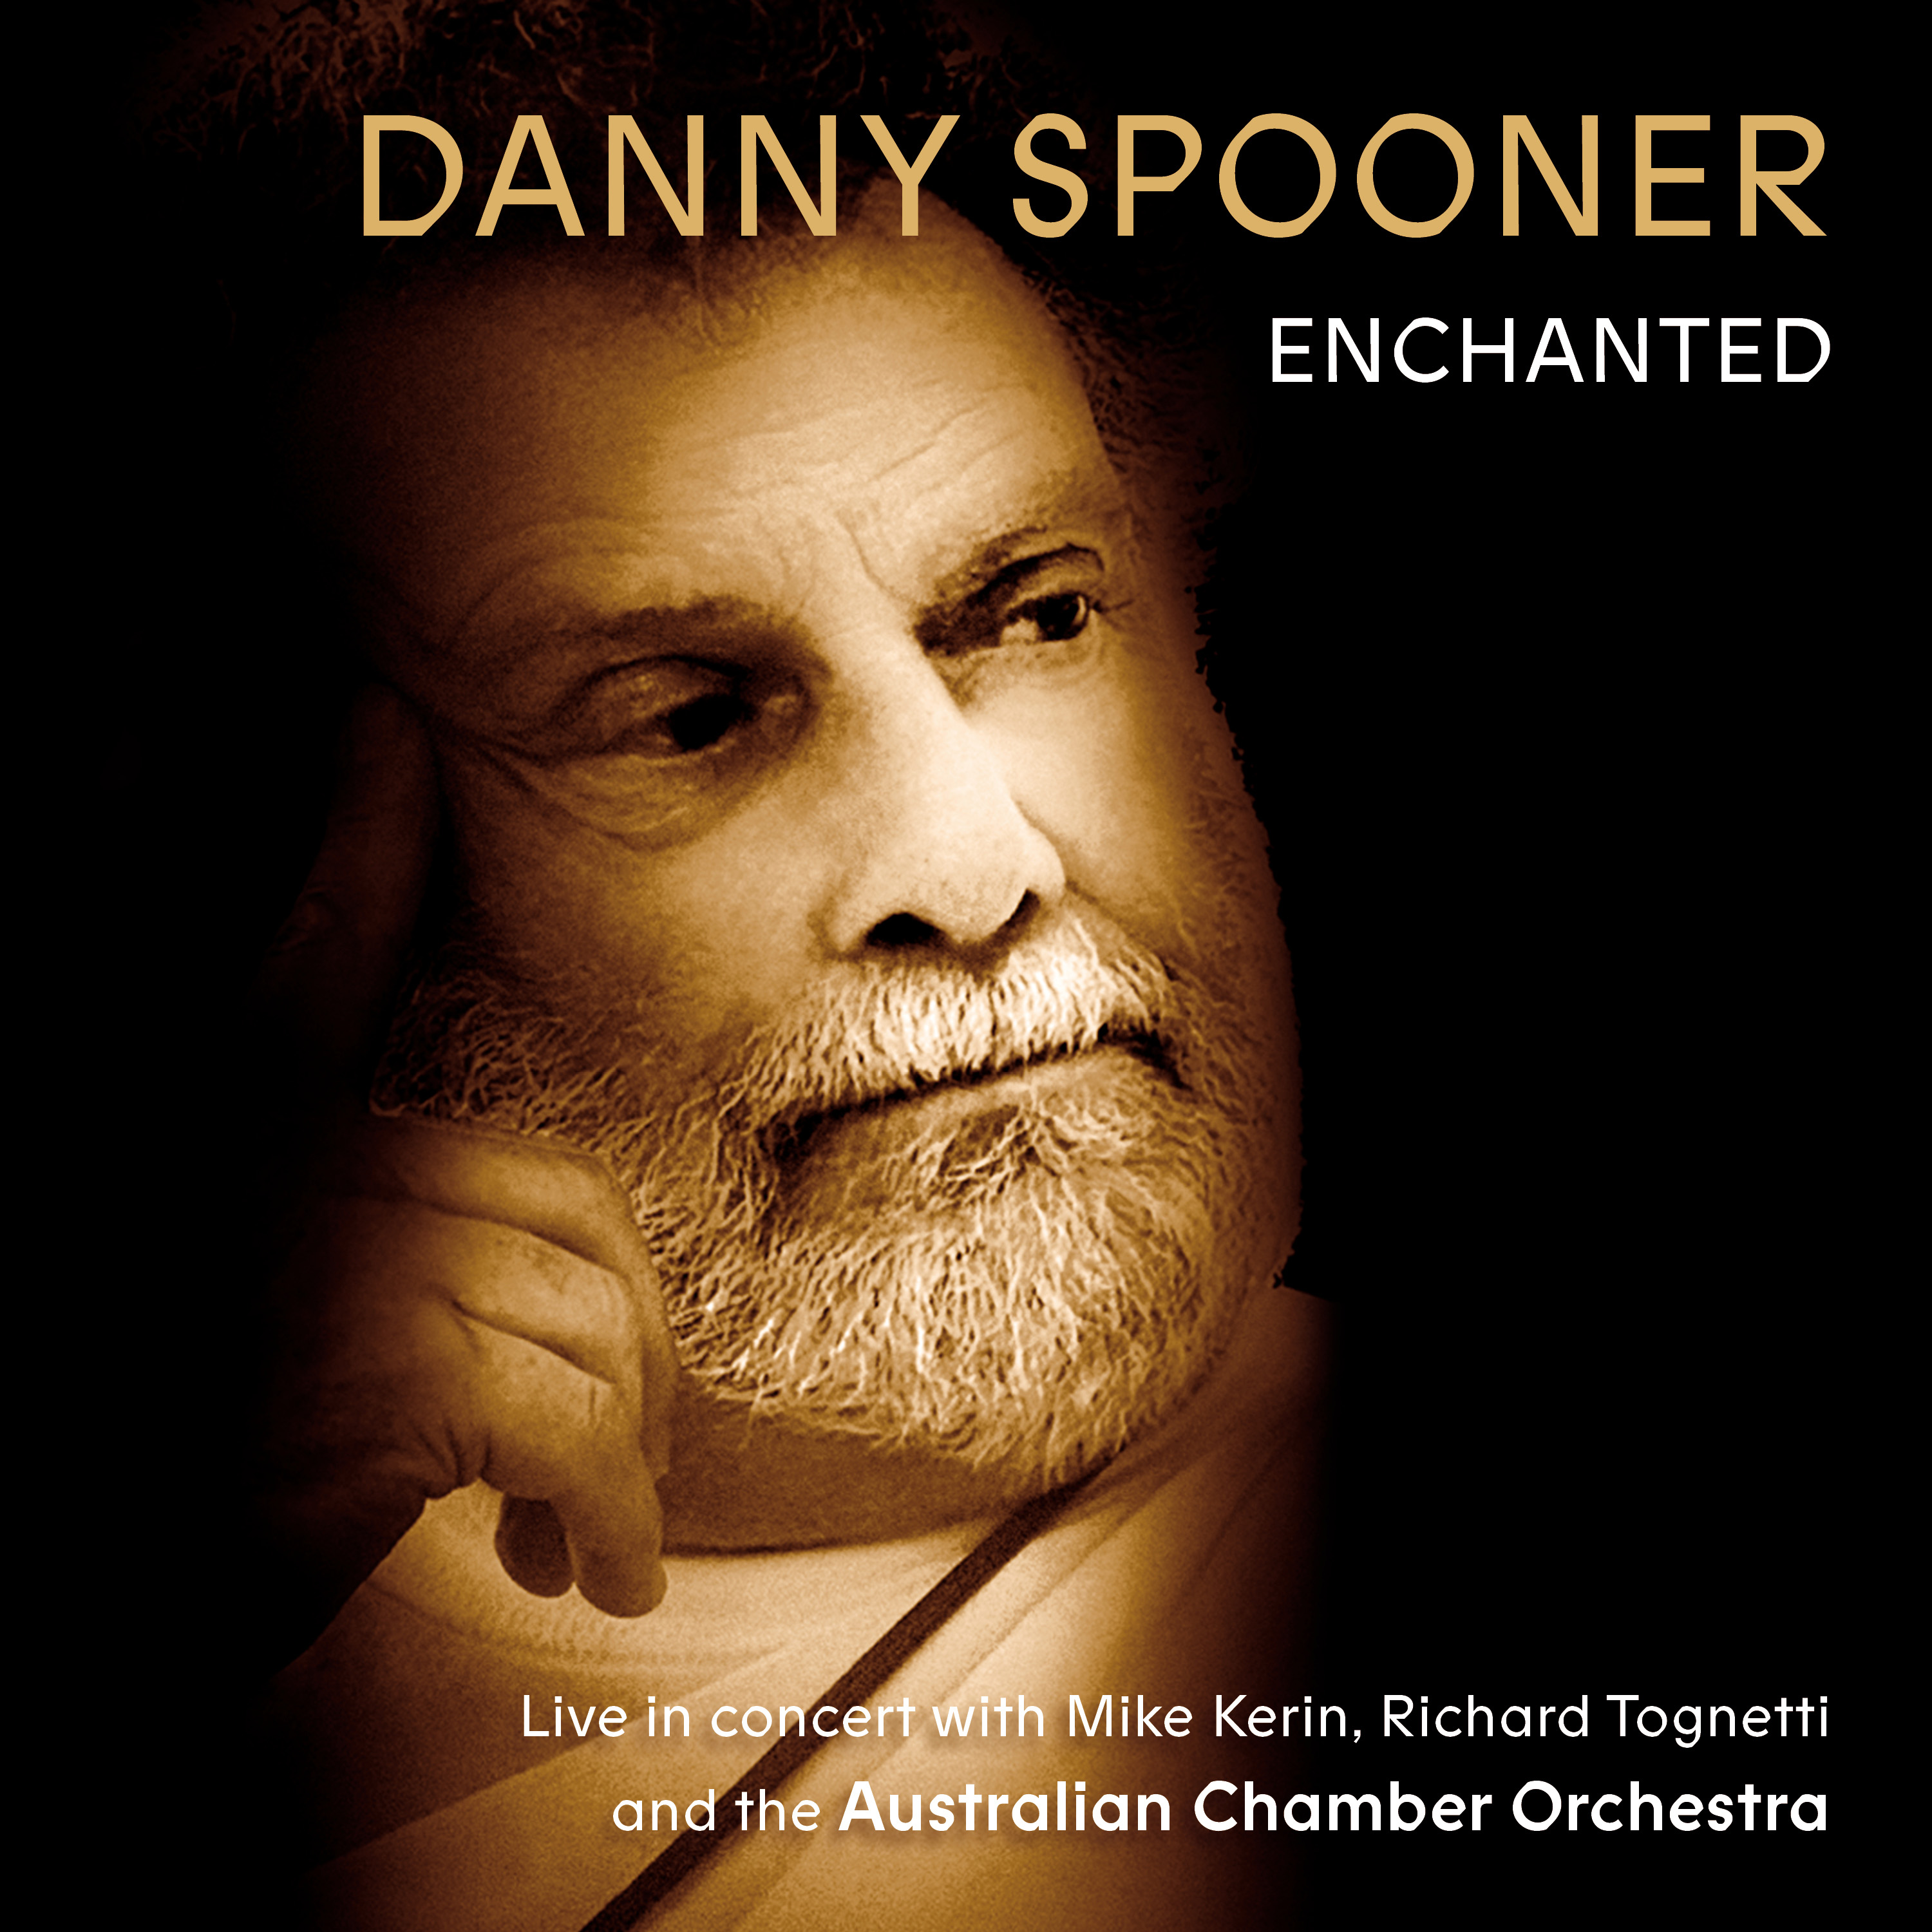 ABC Music | Enchanted: Live in concert with Danny Spooner, Mike Kerin and  the Australian Chamber Orchestra